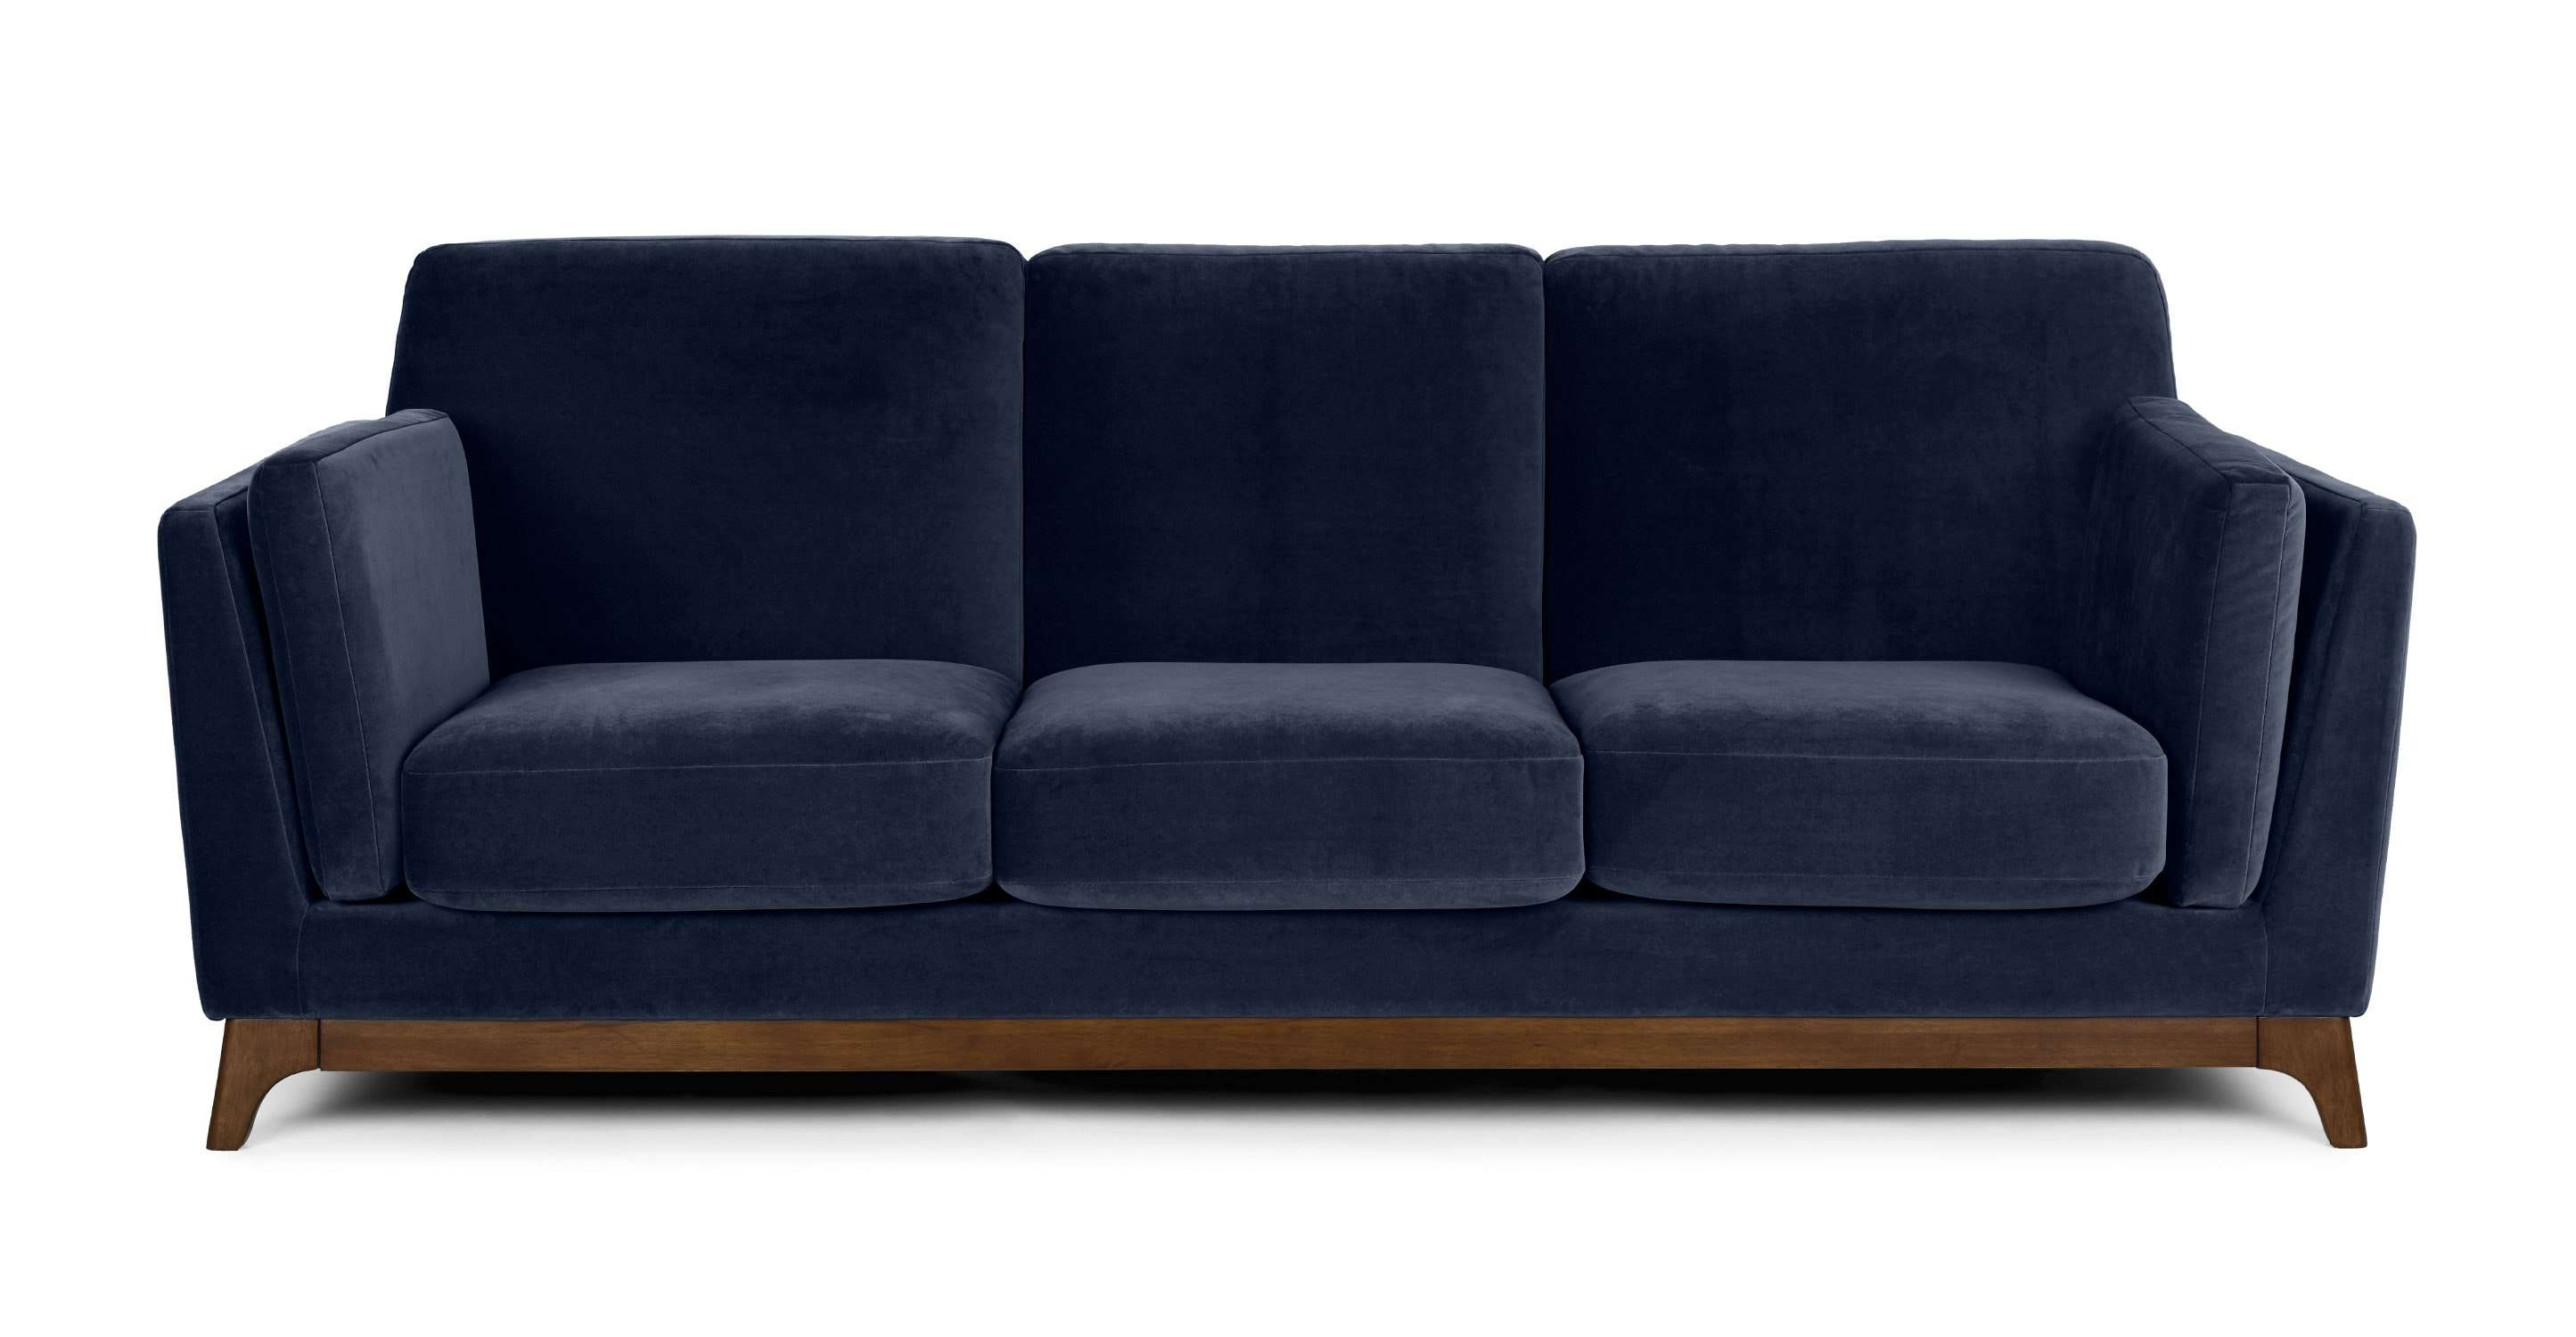 Remarkable Behold The 12 Navy Blue Couches We All Secretly Need Ncnpc Chair Design For Home Ncnpcorg